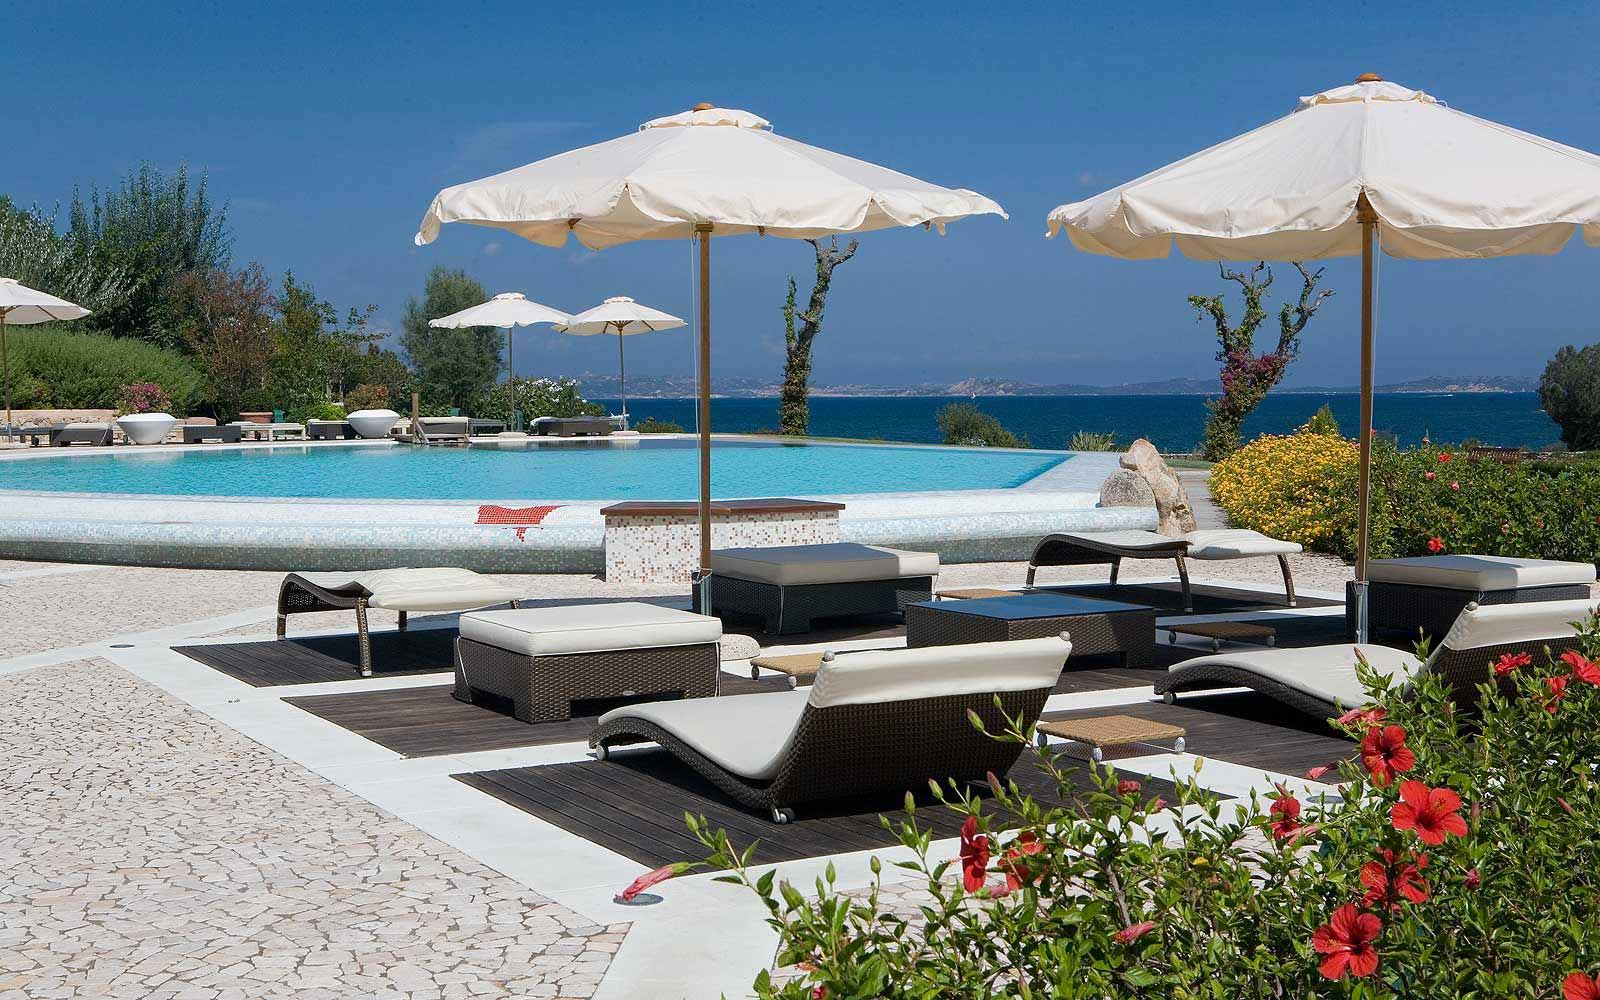 Sunbeds by the pool at L'Ea Bianca Luxury Resort